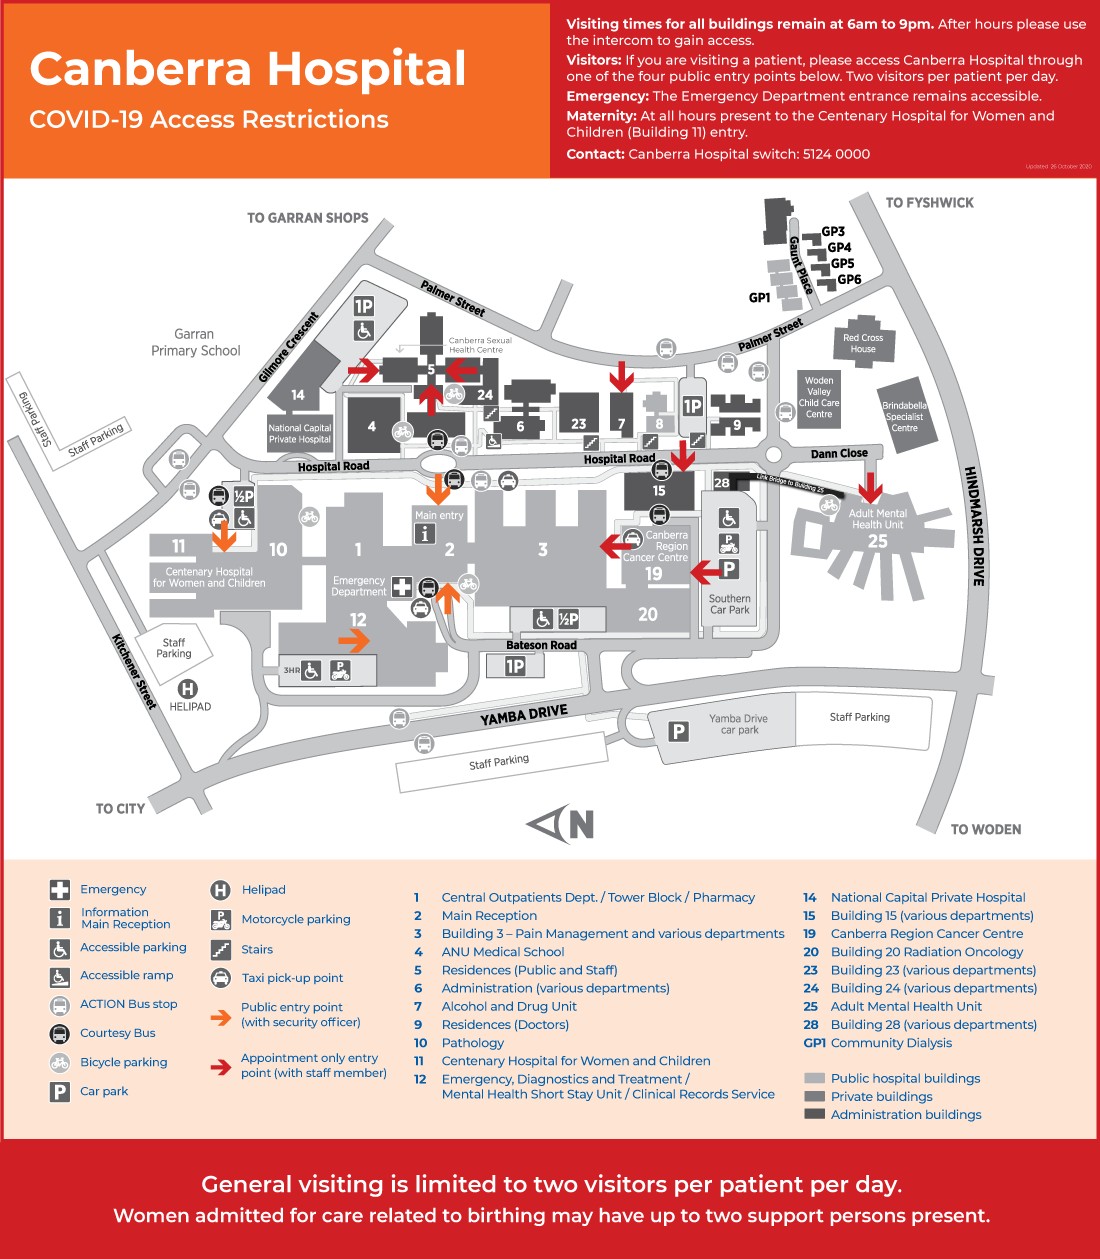 Canberra Hospital Campus Map - COVID-19